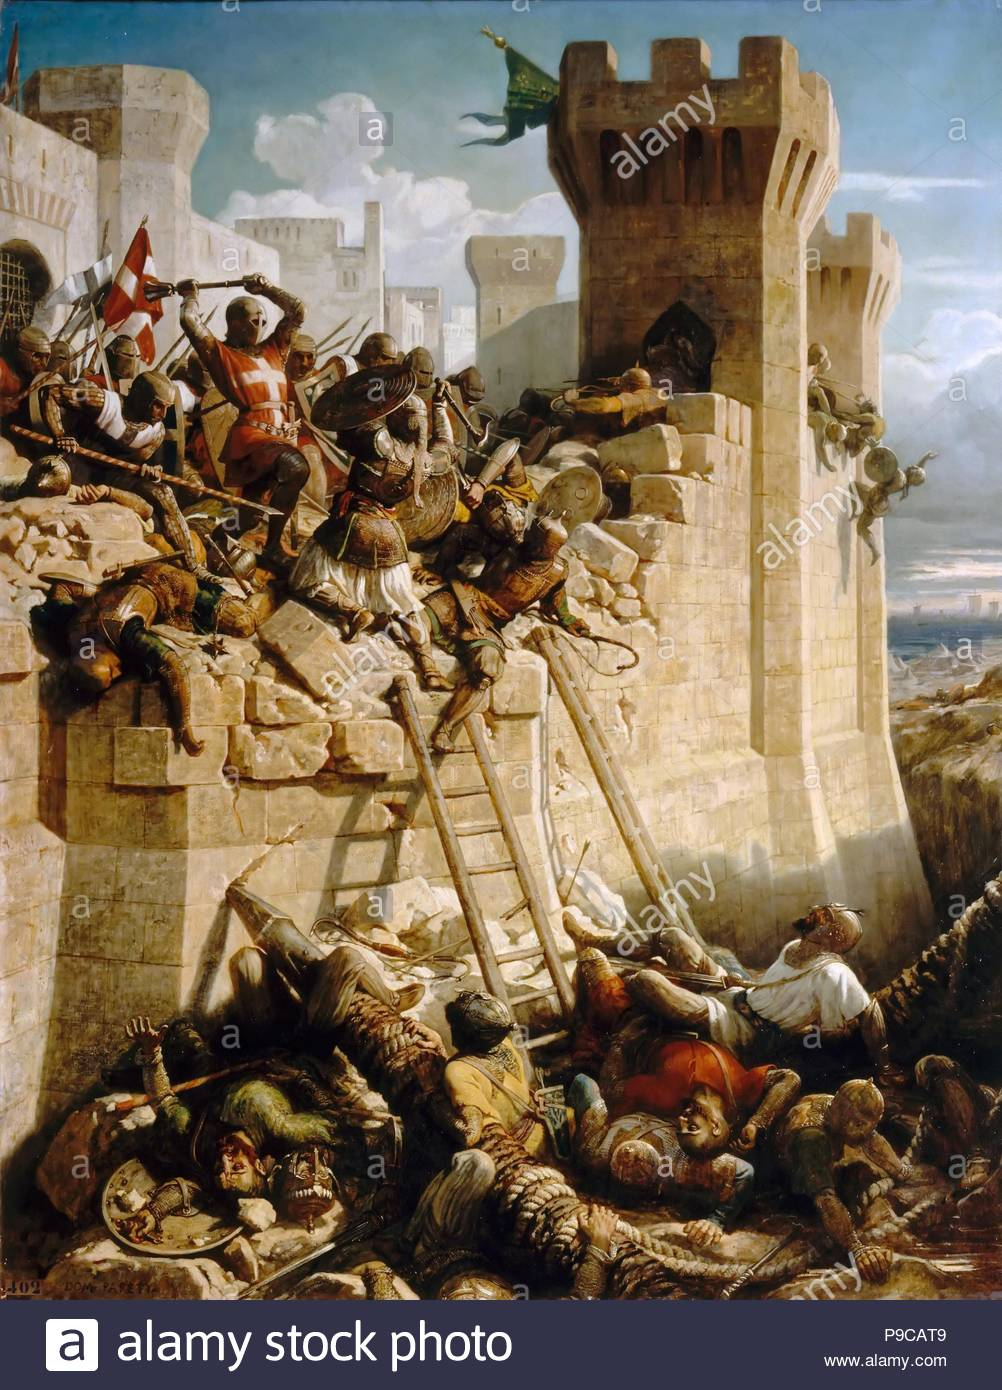 Guillaume de Clermont defending the walls at the Siege of Acre, 1291.  Museum: Musée de l'Histoire de France, Château de Versailles.